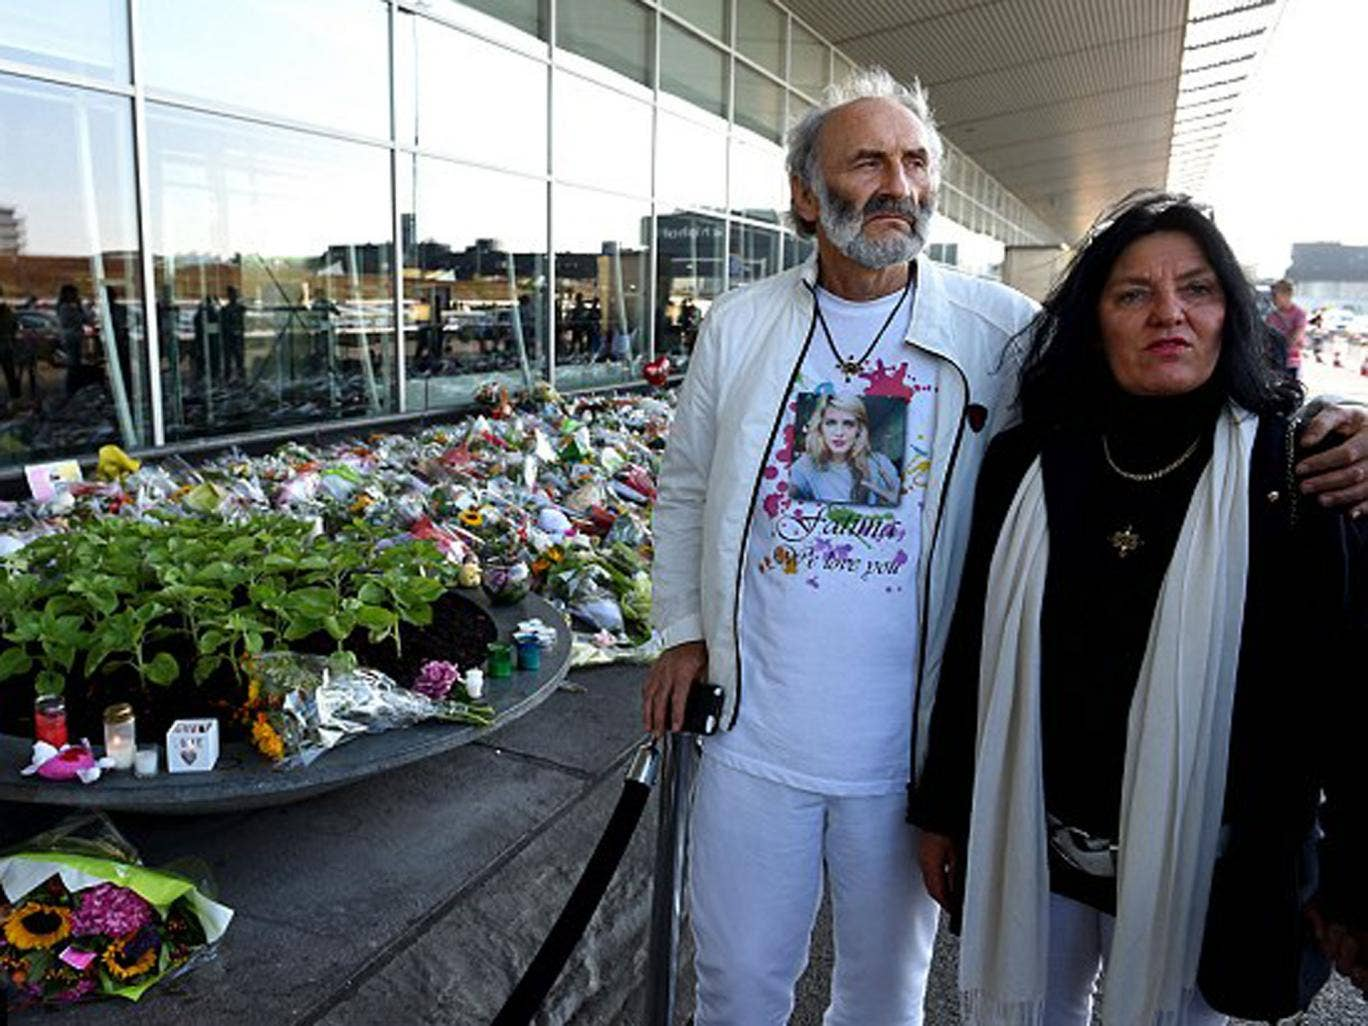 George and Angela Dyczynski the parents of 25-year-old only child Fatima Dyczynski stand outside the airport